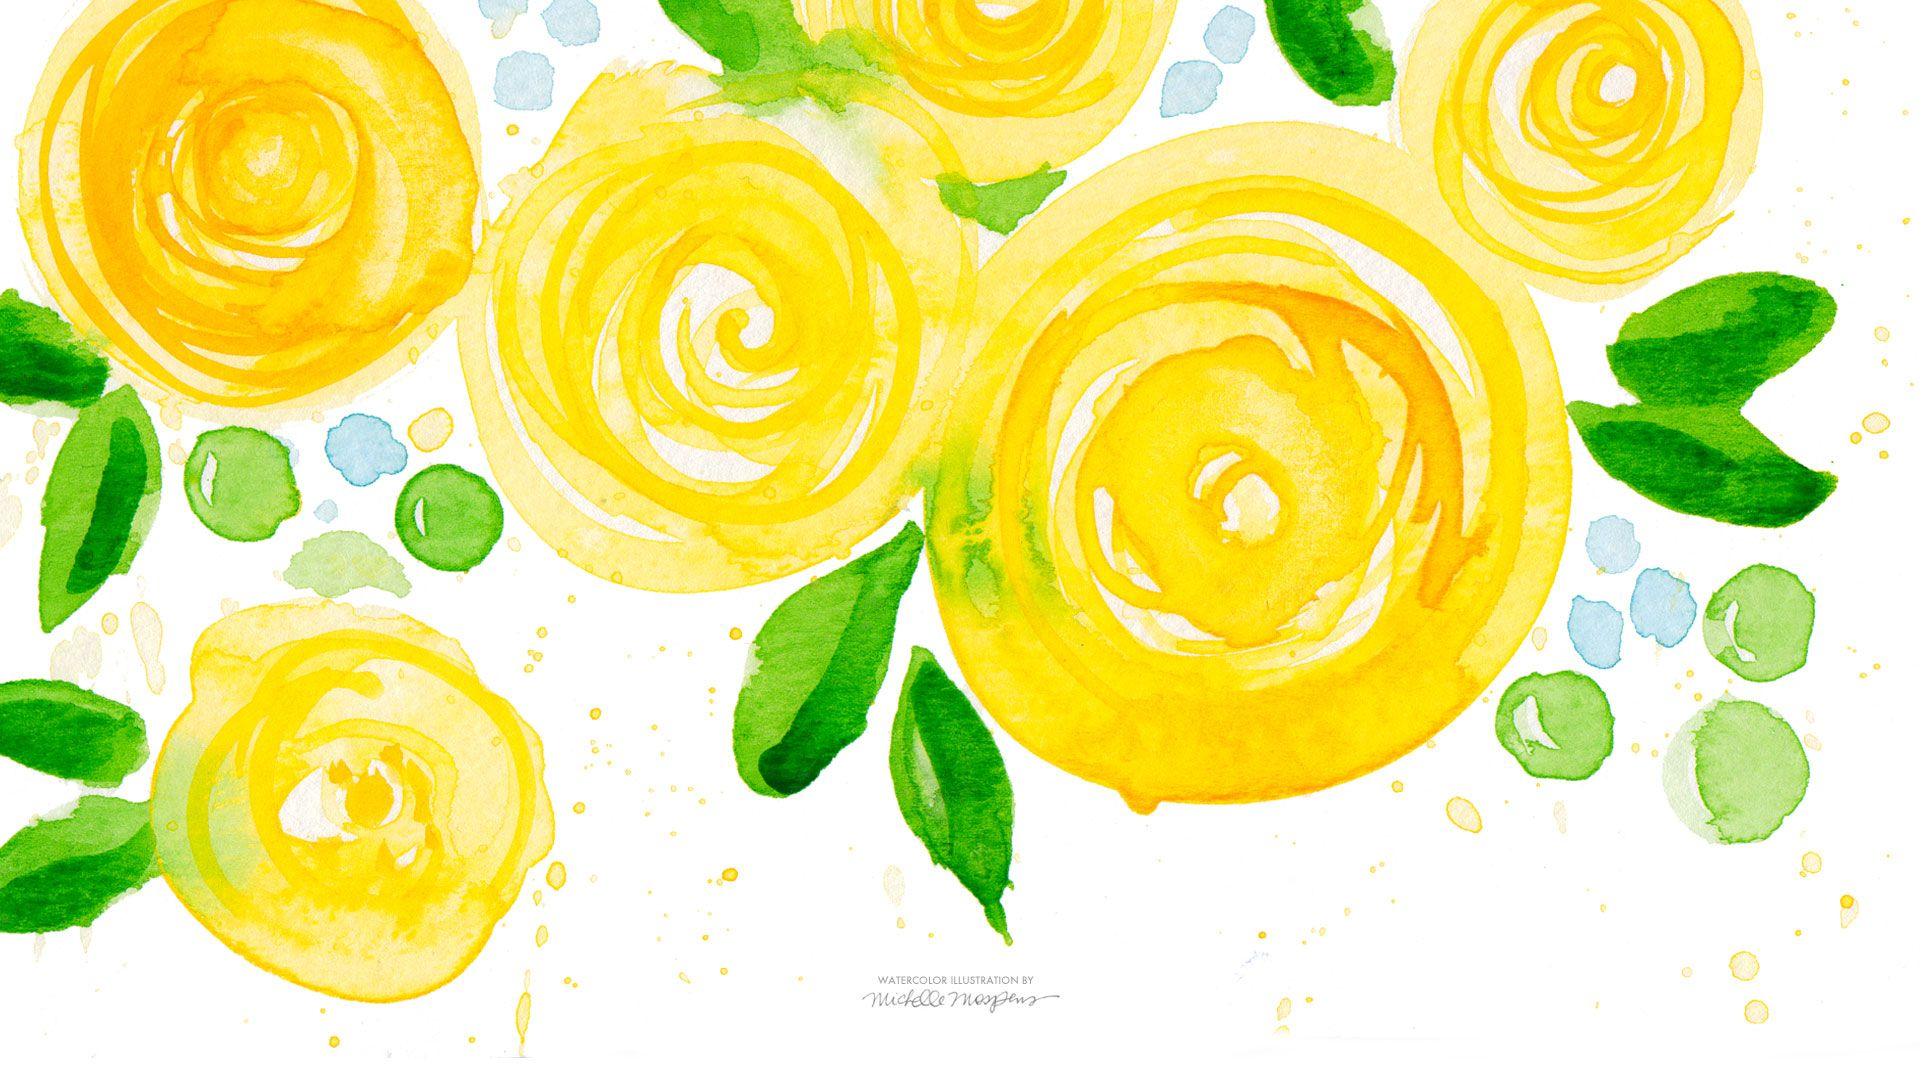 Wallpaper download mood off - Yellow Watercolor Flowers Wallpaper Download A Watercolor Life